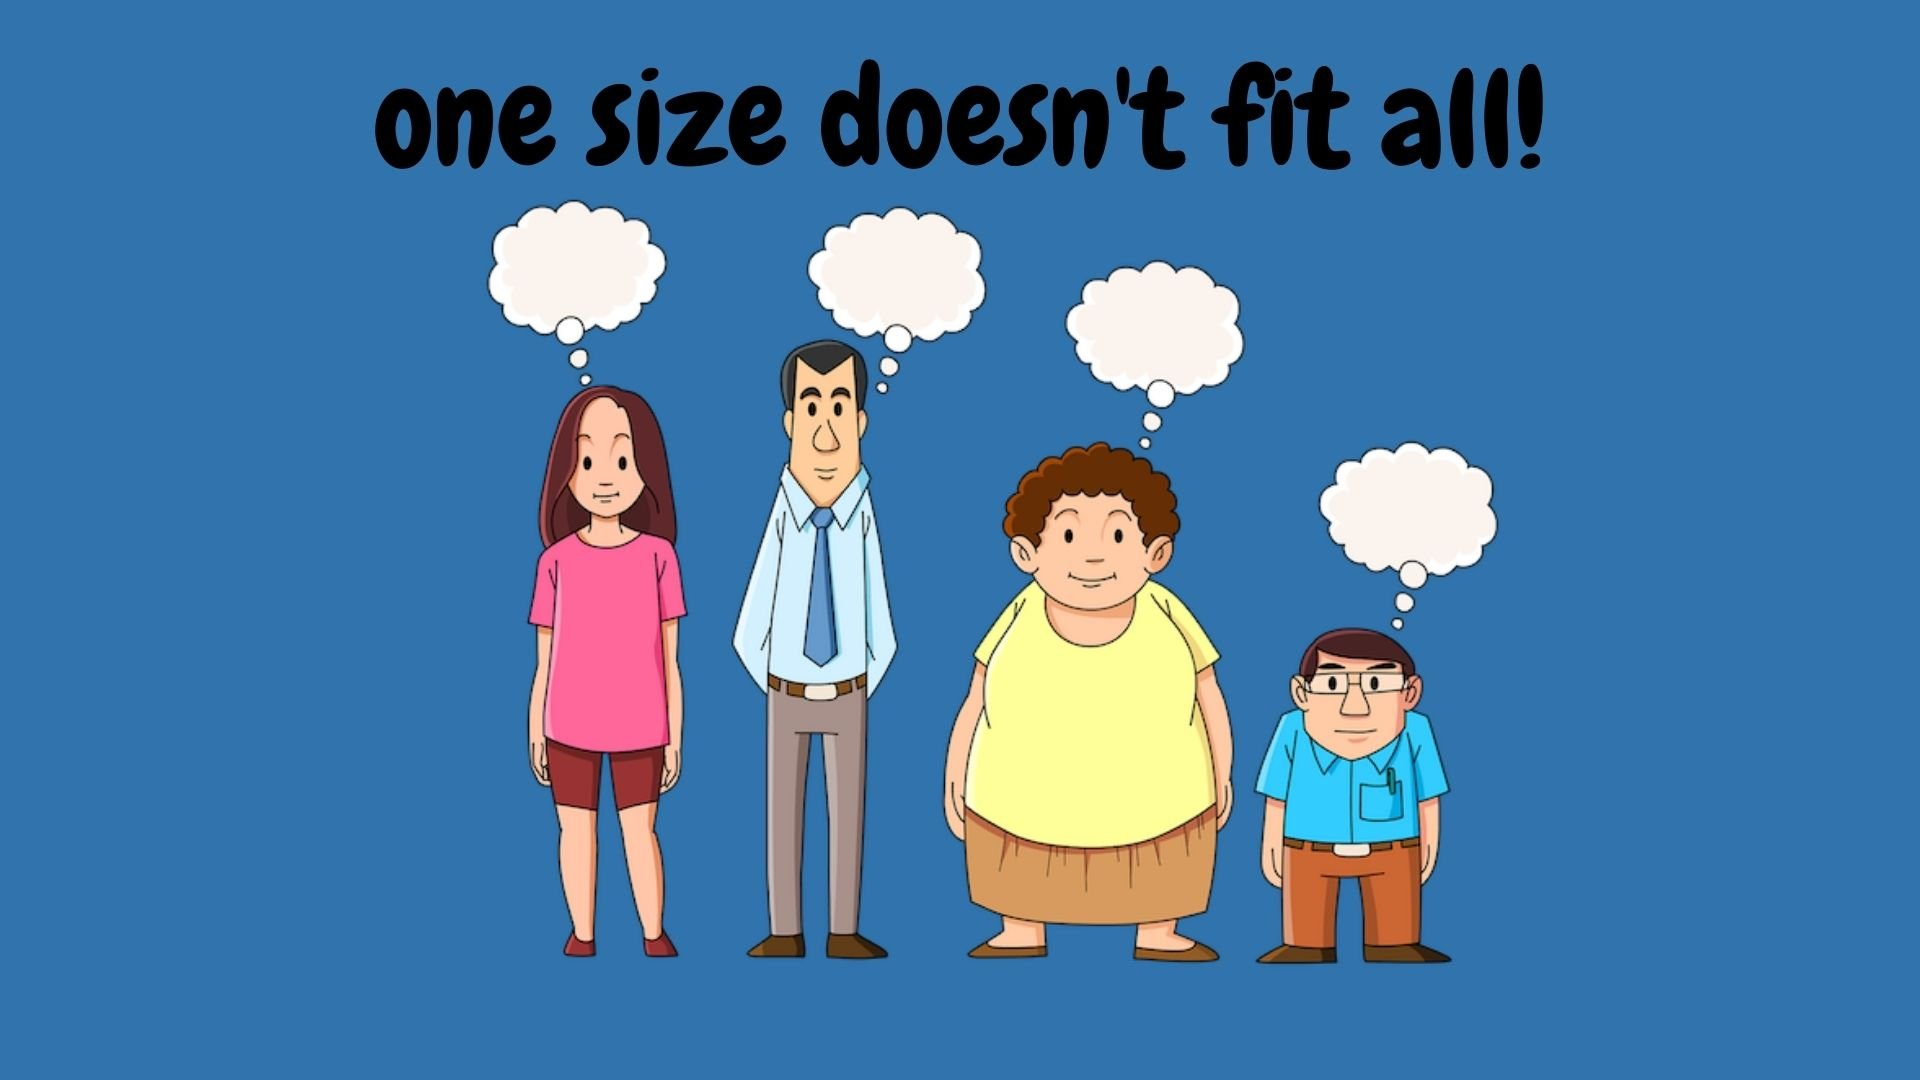 One size toilets doesn't fit all!